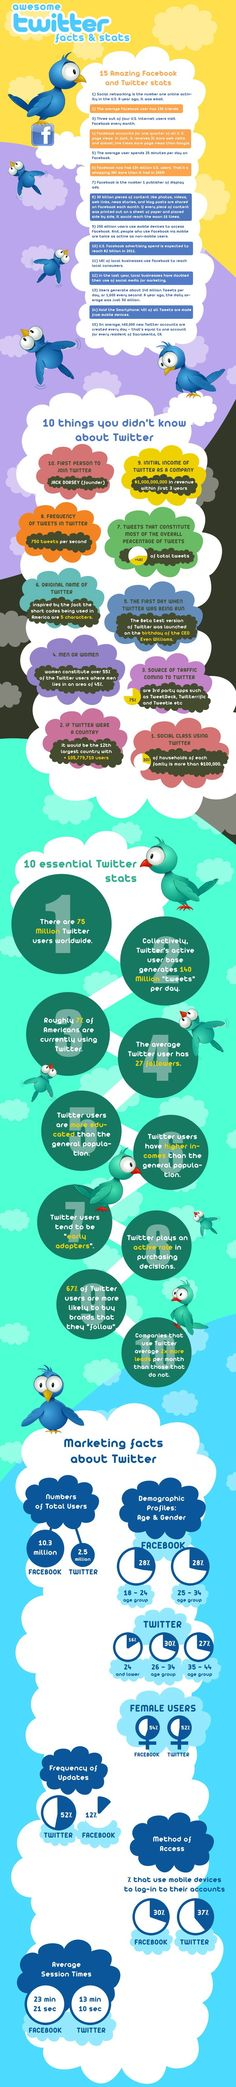 #INfographic - Awesome #Twitter Facts & Stats